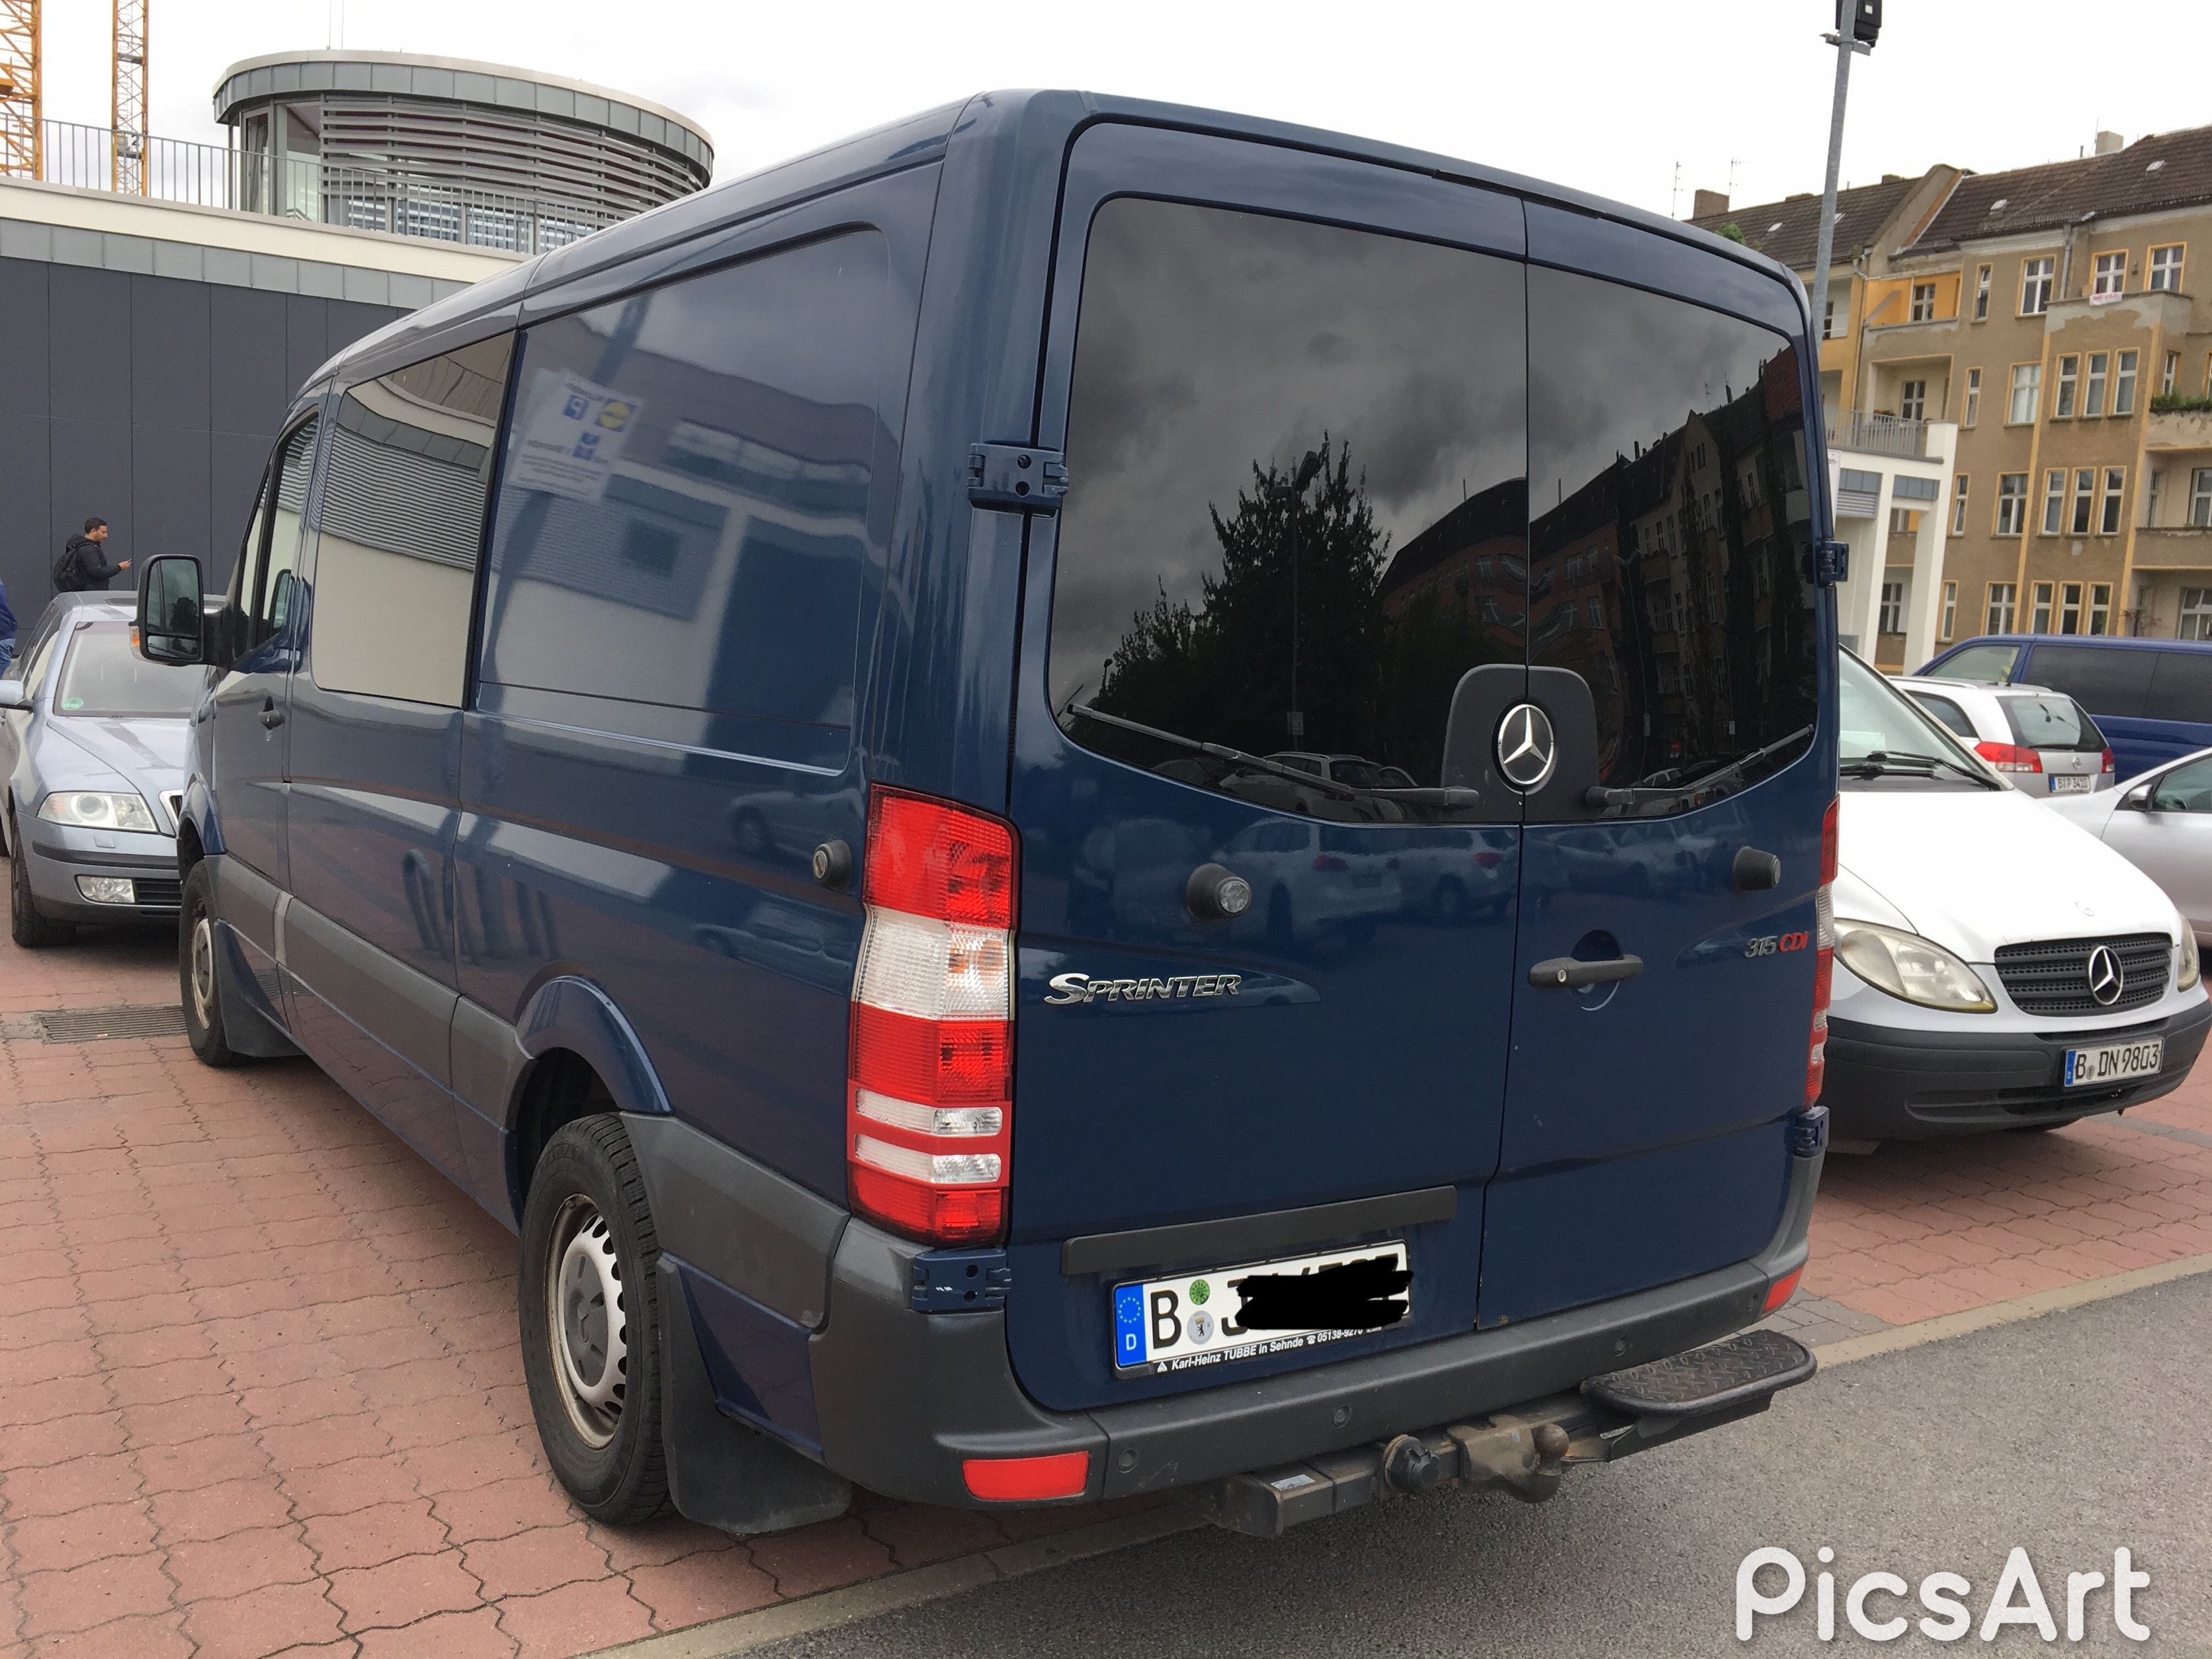 sprinter mieten berlin khlfahrzeug lkw with sprinter mieten berlin transporter renault trafic. Black Bedroom Furniture Sets. Home Design Ideas